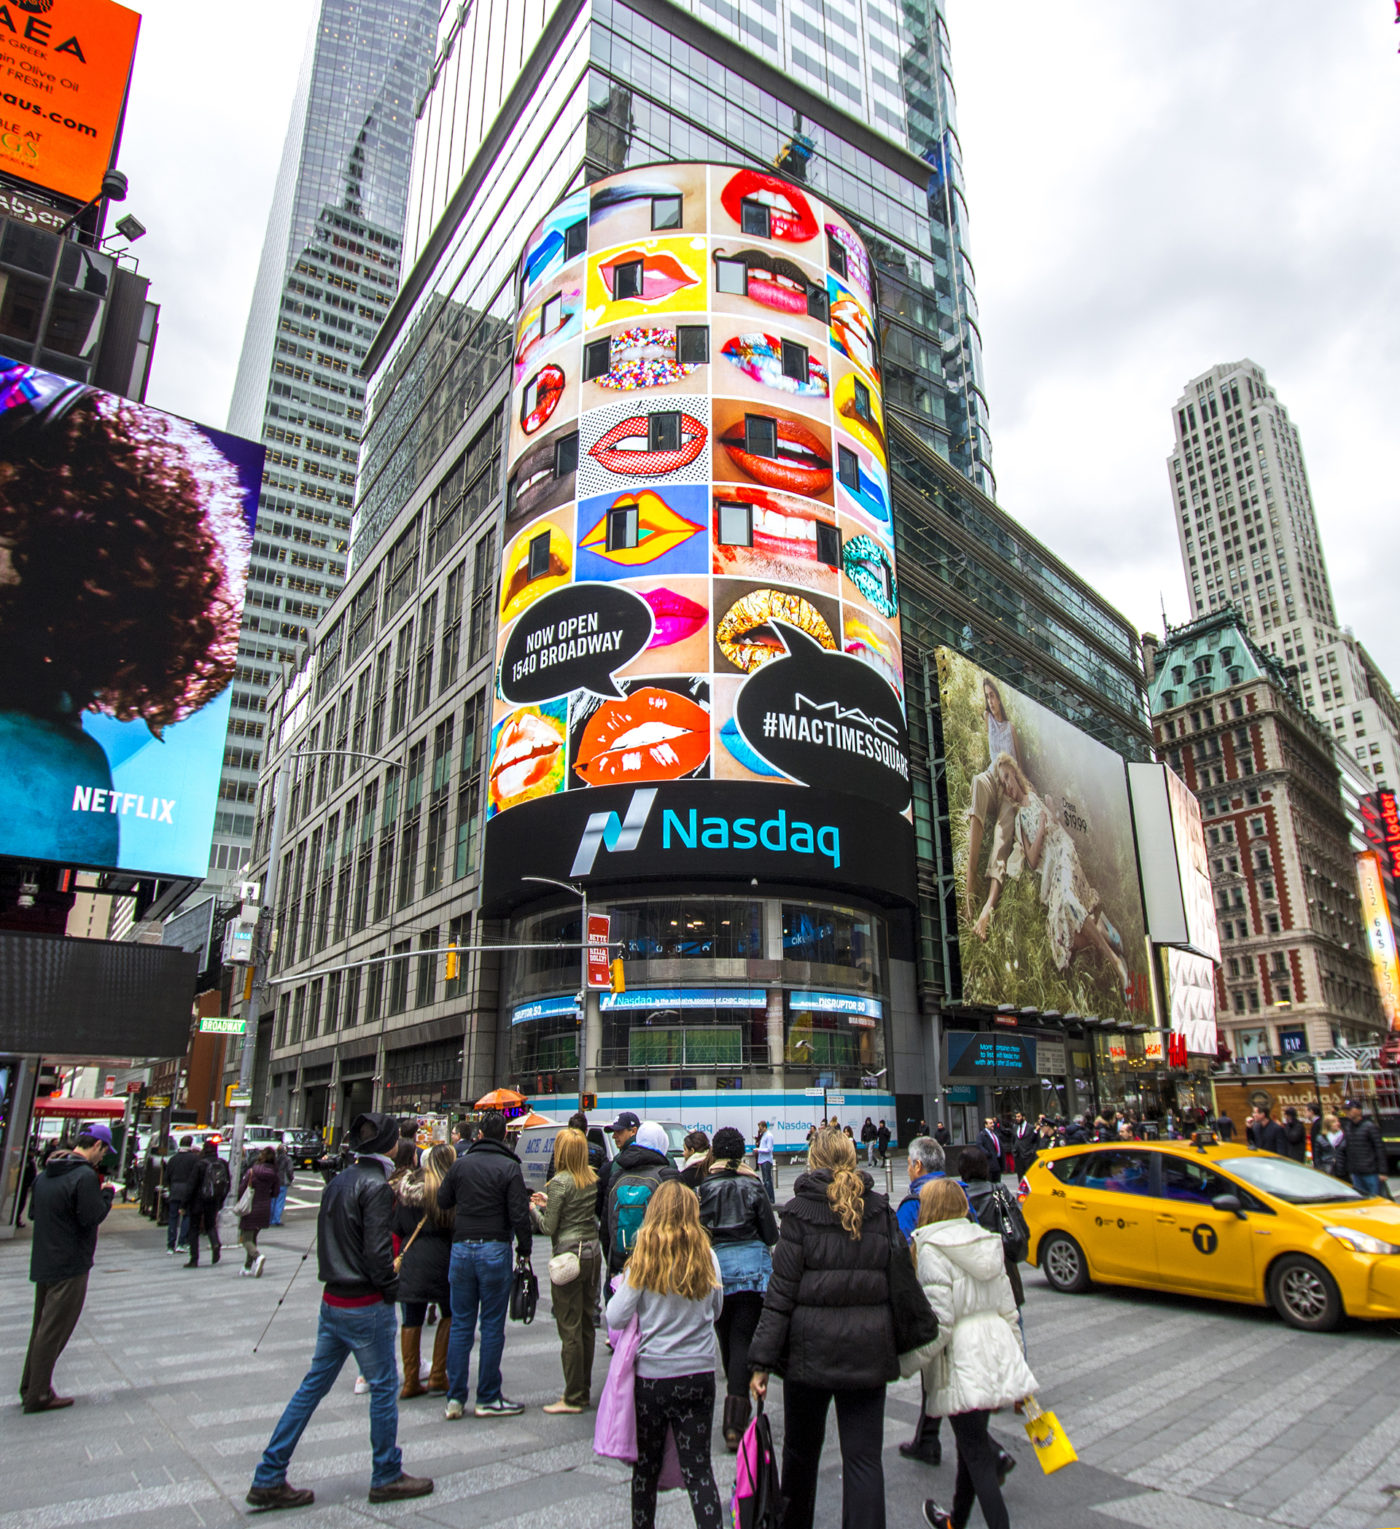 MAC Cosmetics - #MACTIMESQUARE - Nasdaq - Digital Domination (New York City, USA)